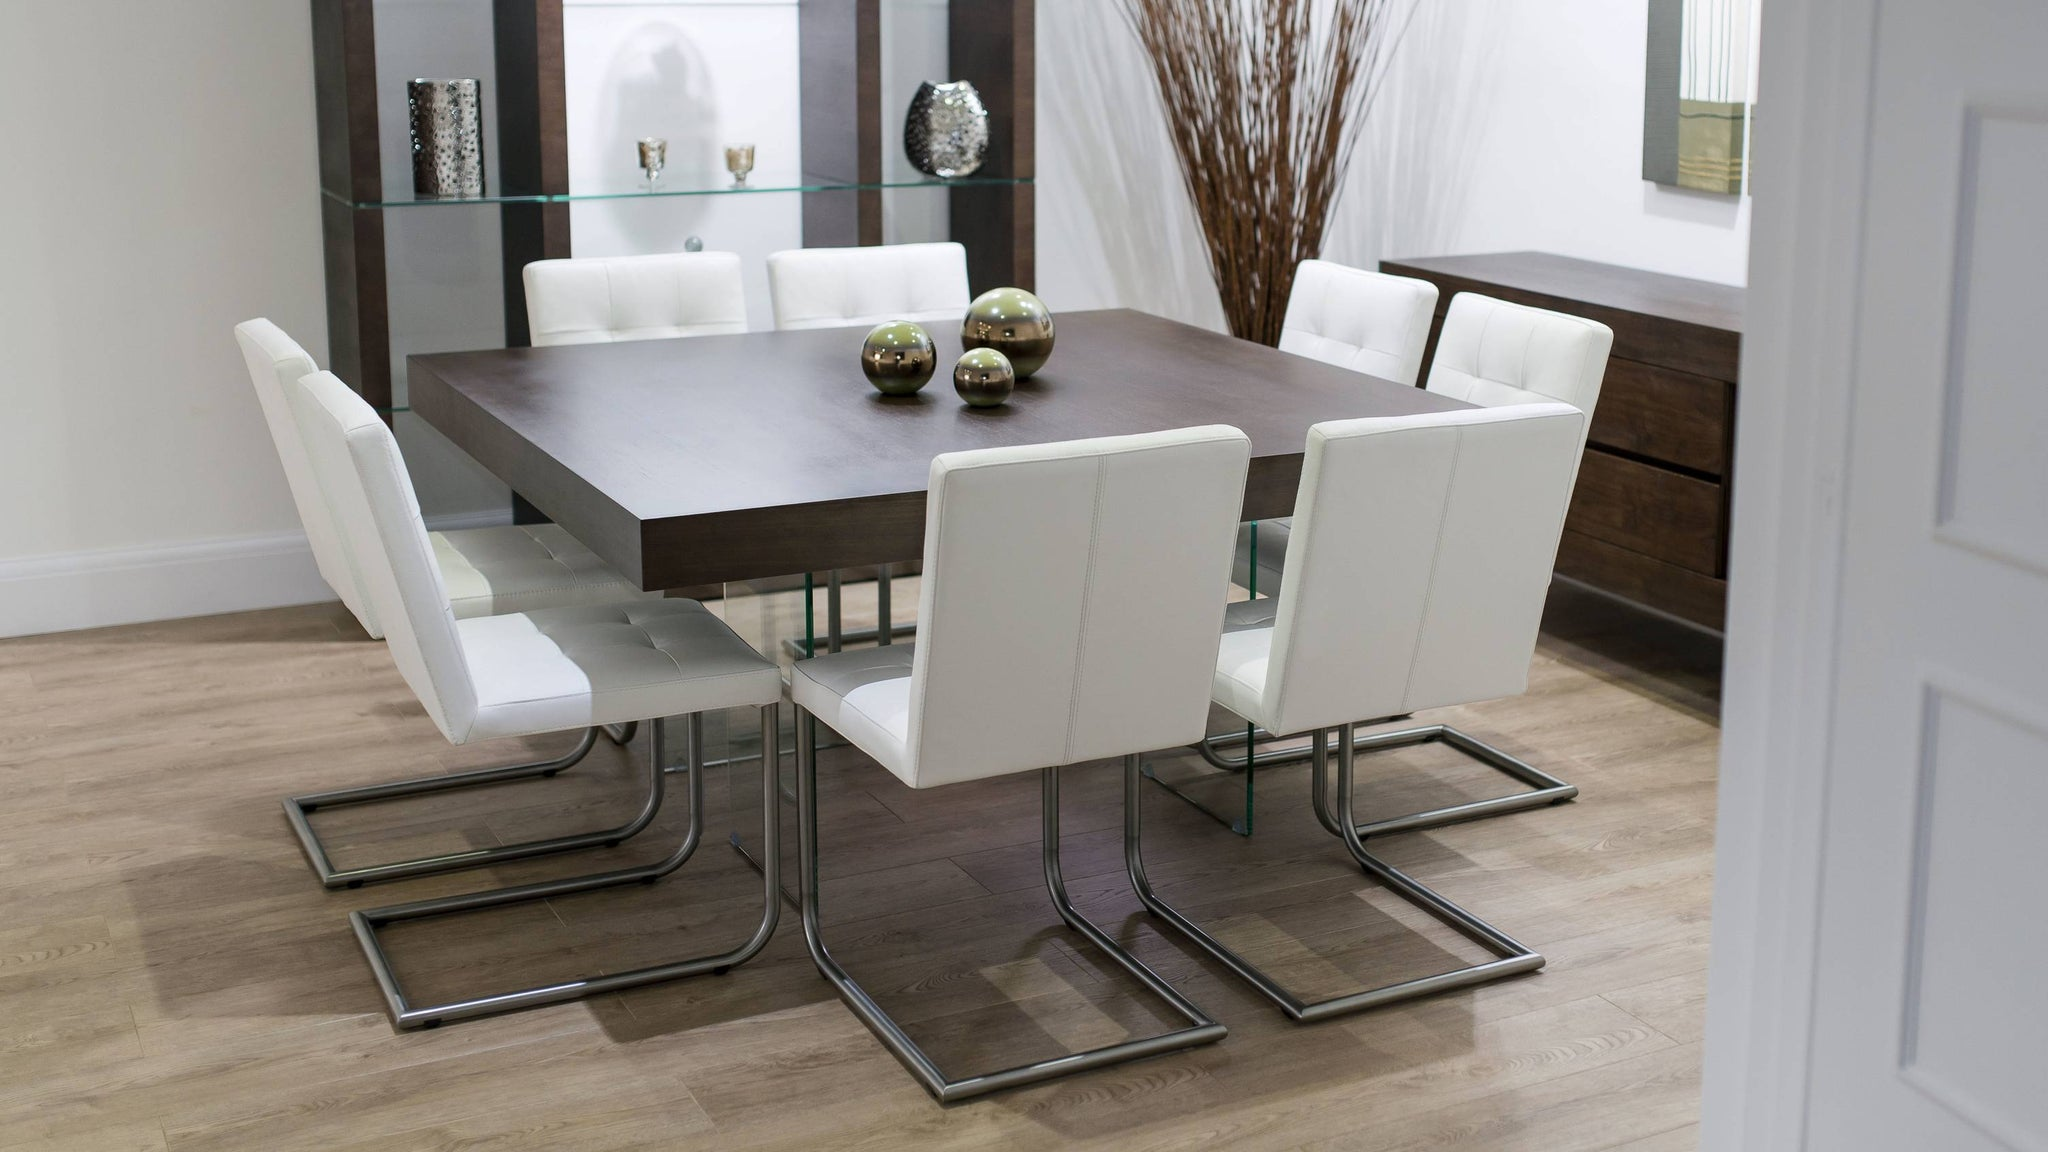 8 Seater Dark Wood Dining Table and Cantilever Dining Chairs